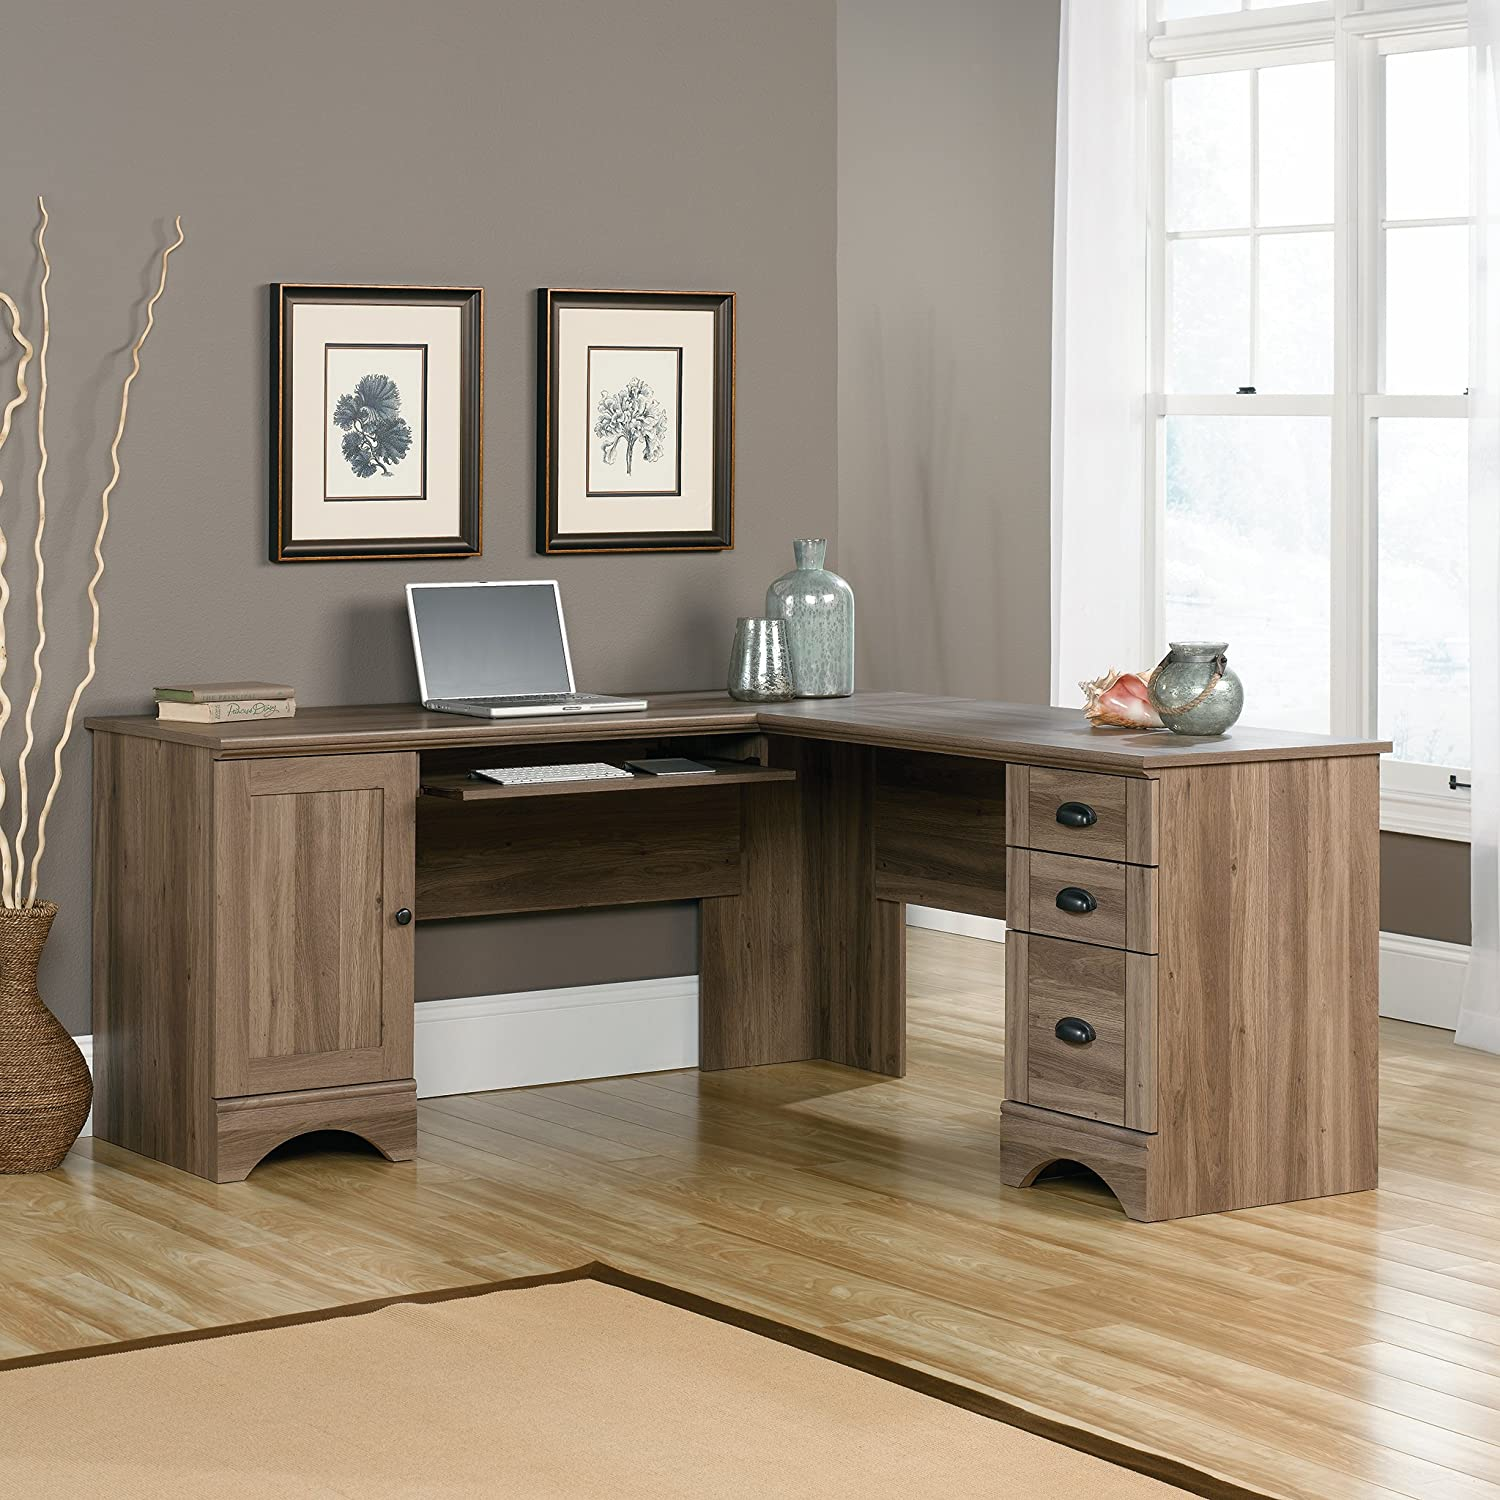 sauder 417586 harbor view corner computer desk a2 salt oak